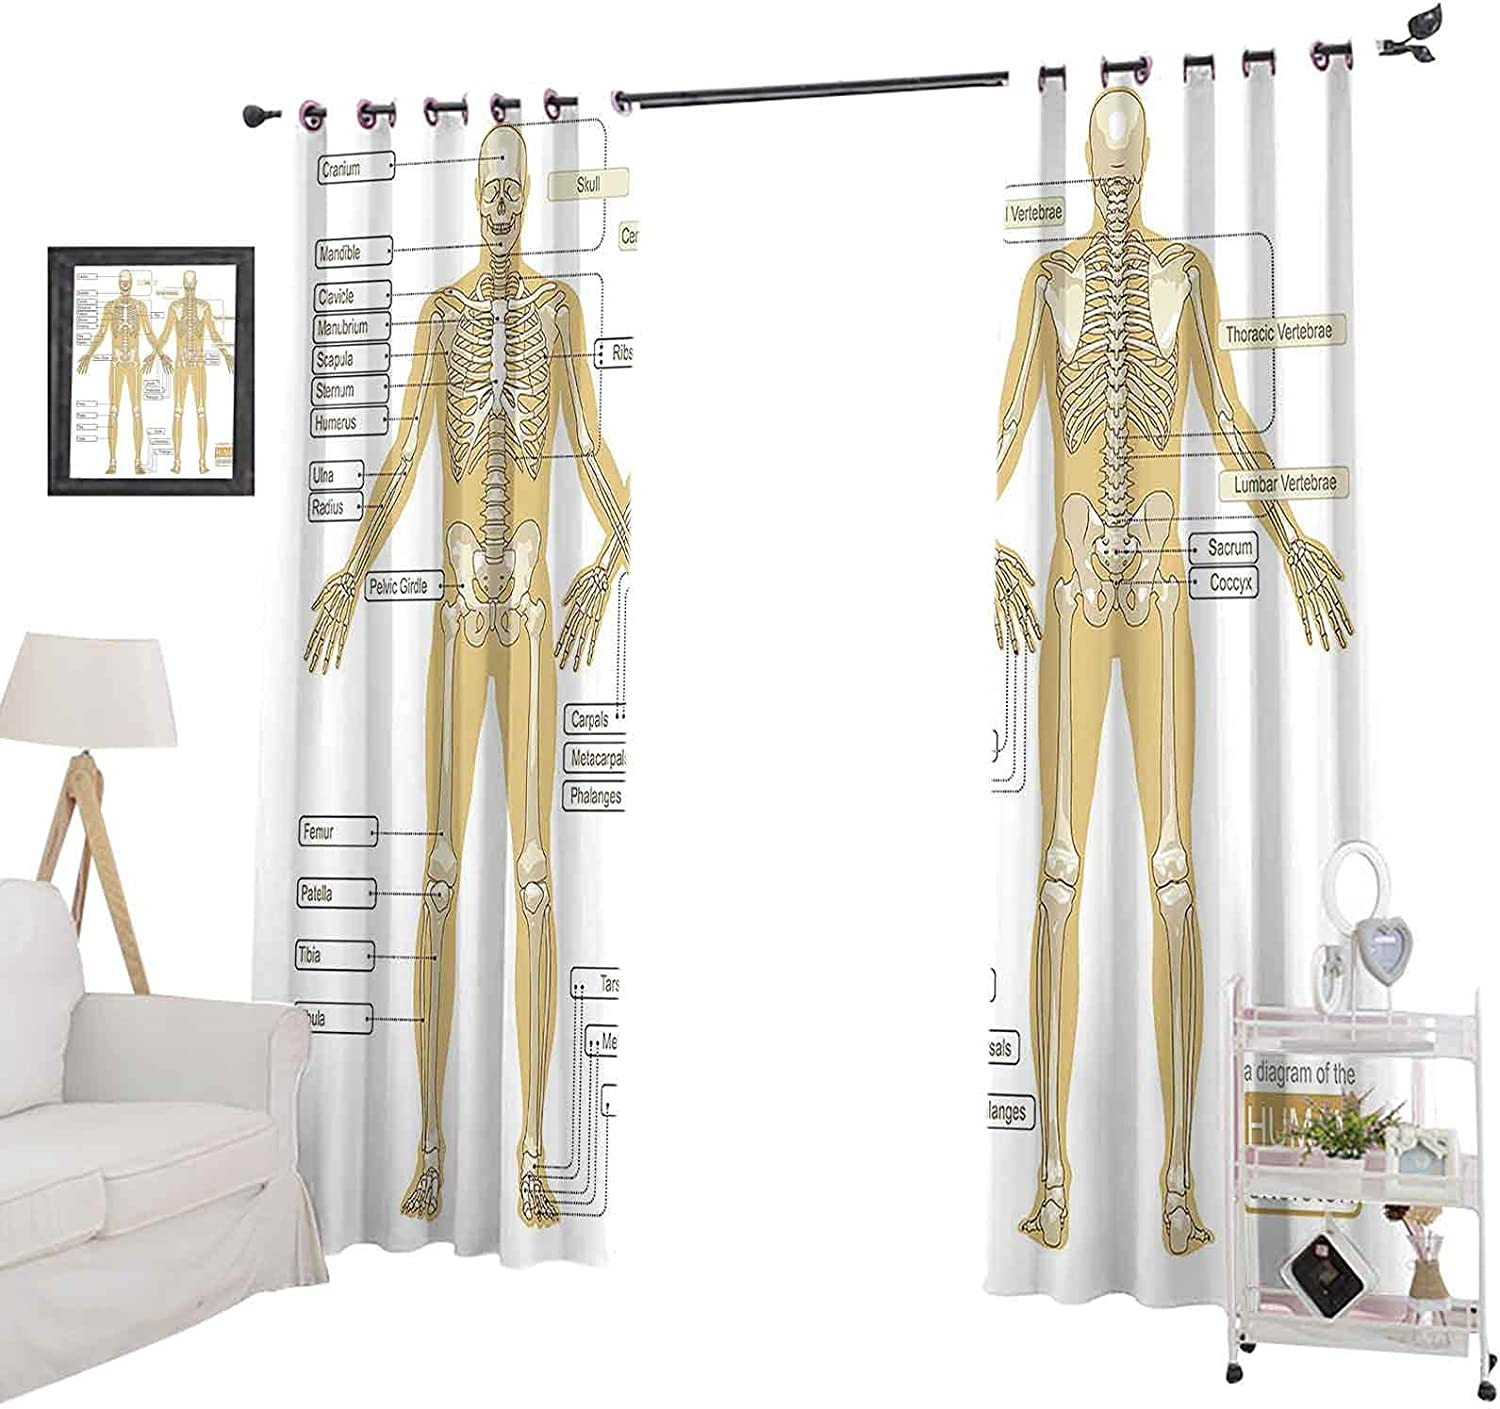 Room Darkening Blackout Curtains Max 70% OFF 72 Long Window P Over item handling ☆ Inches Curtain